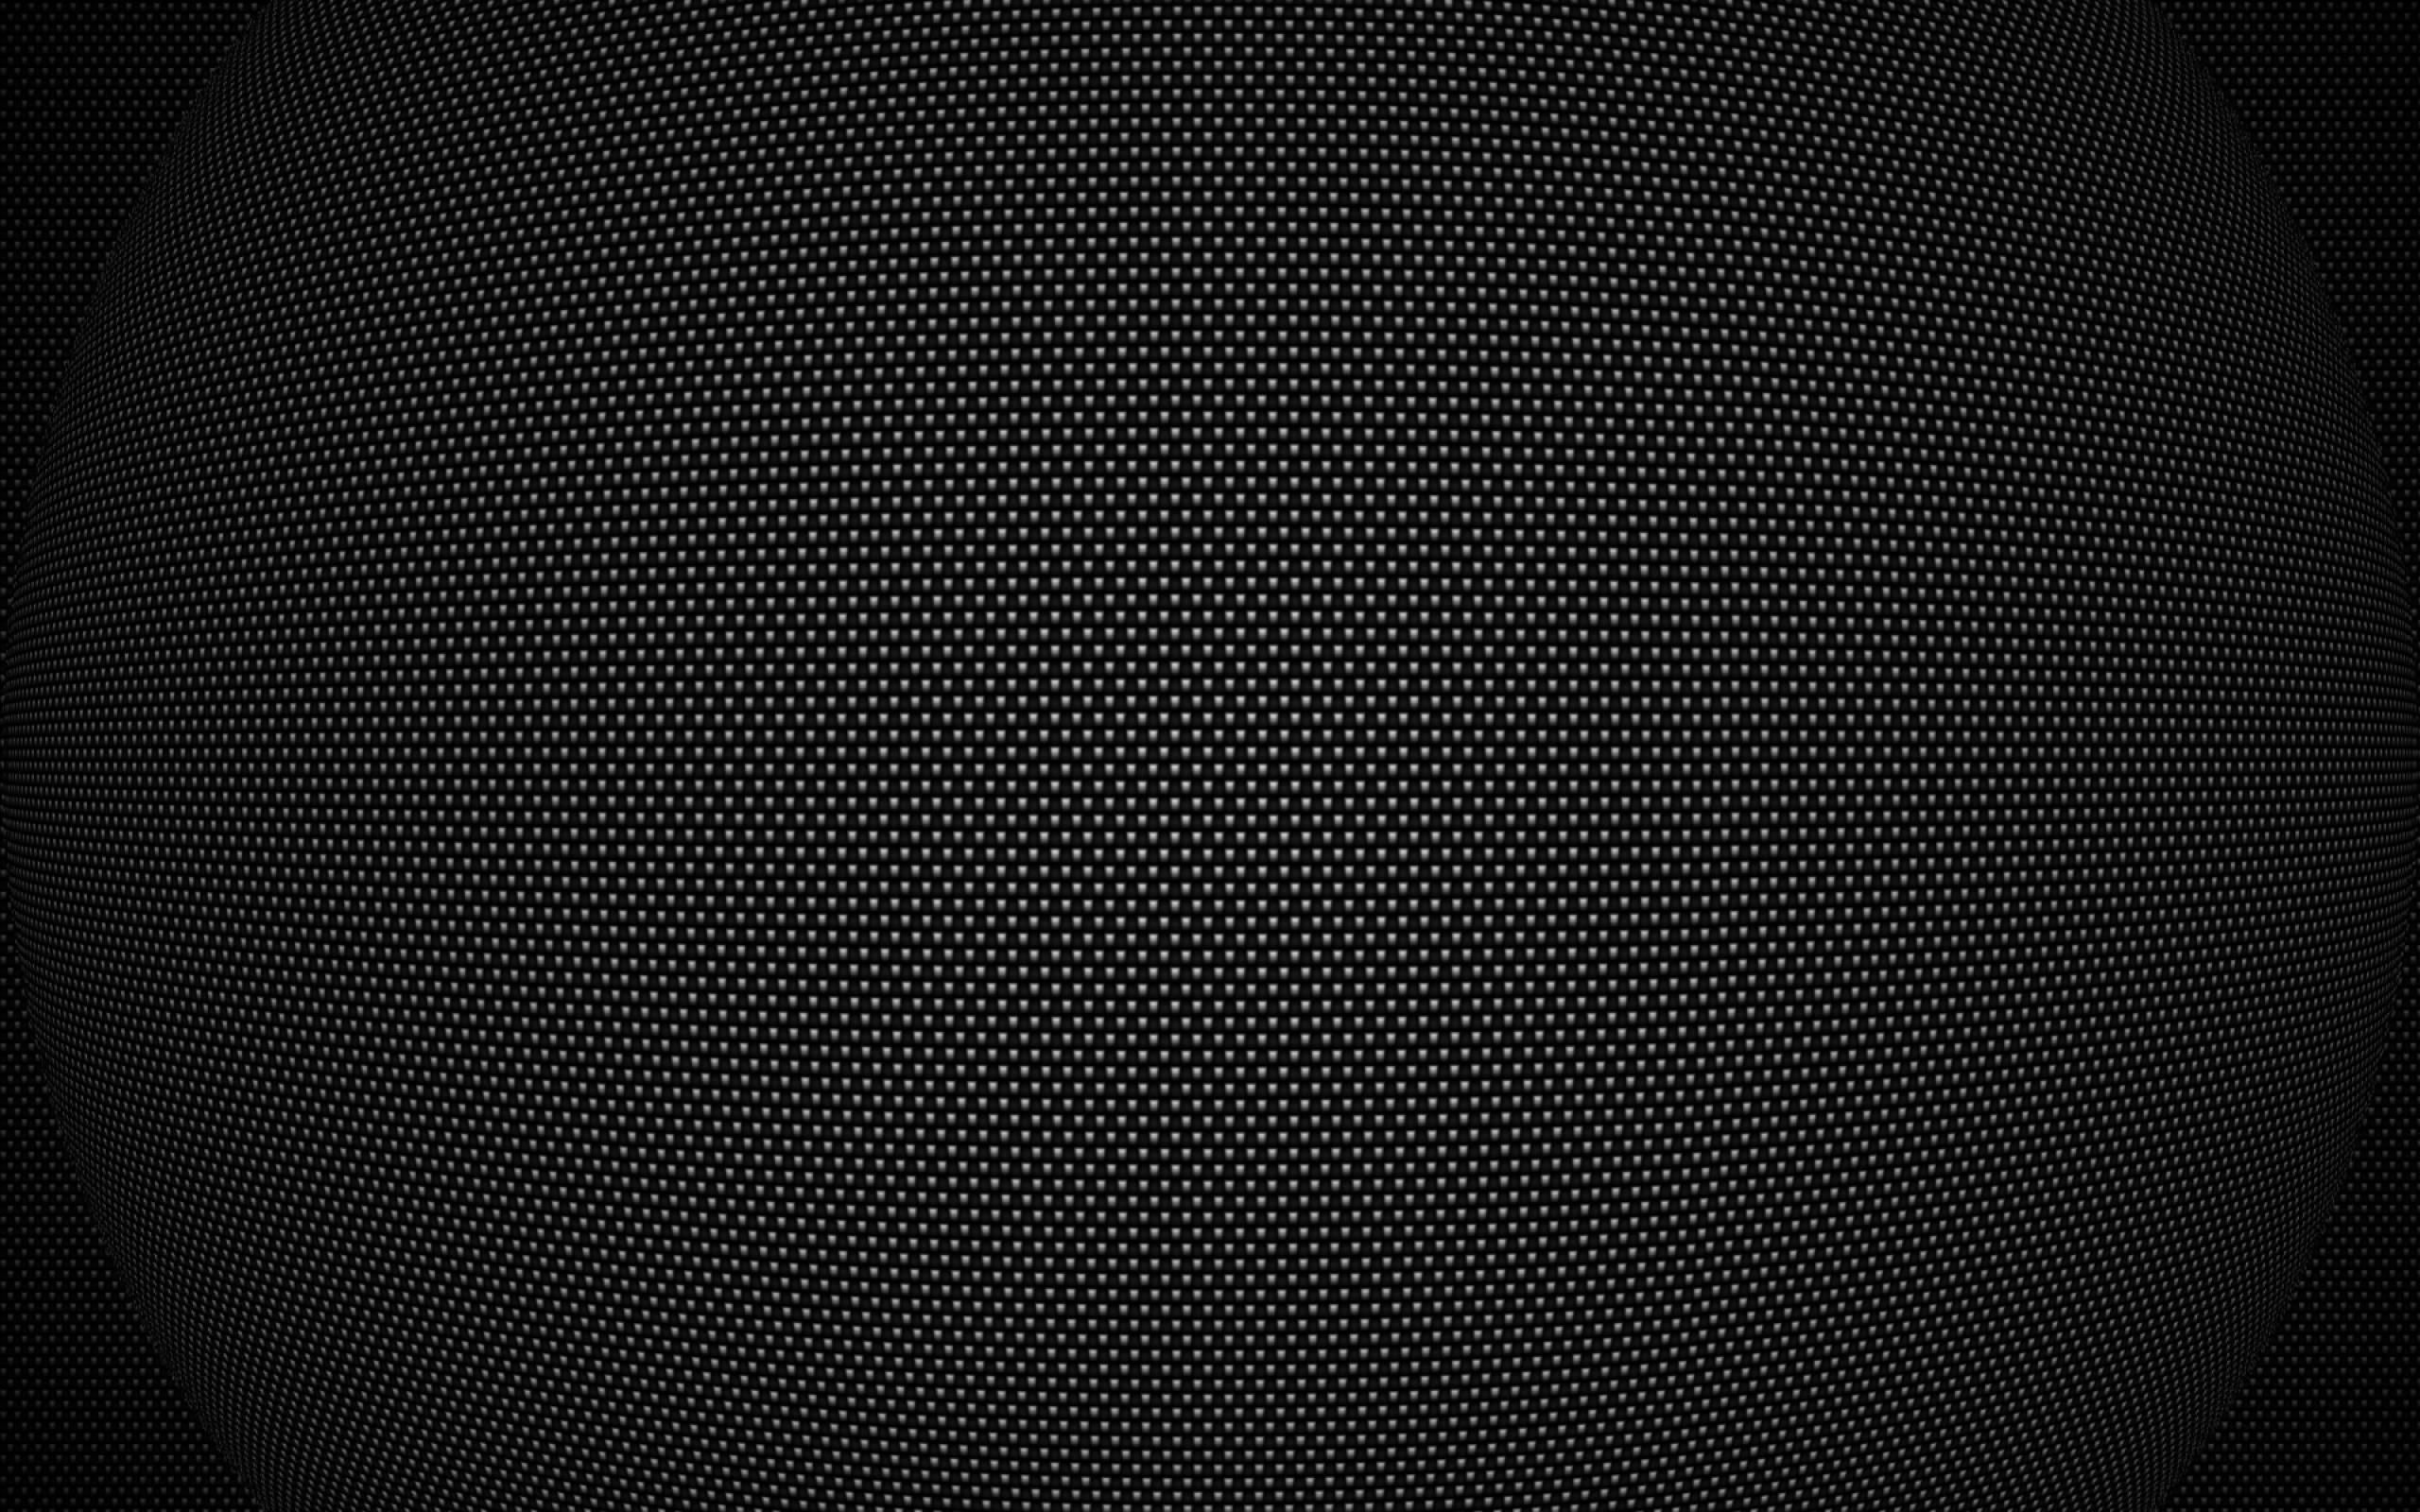 black texture wallpapers 3856 - photo #15